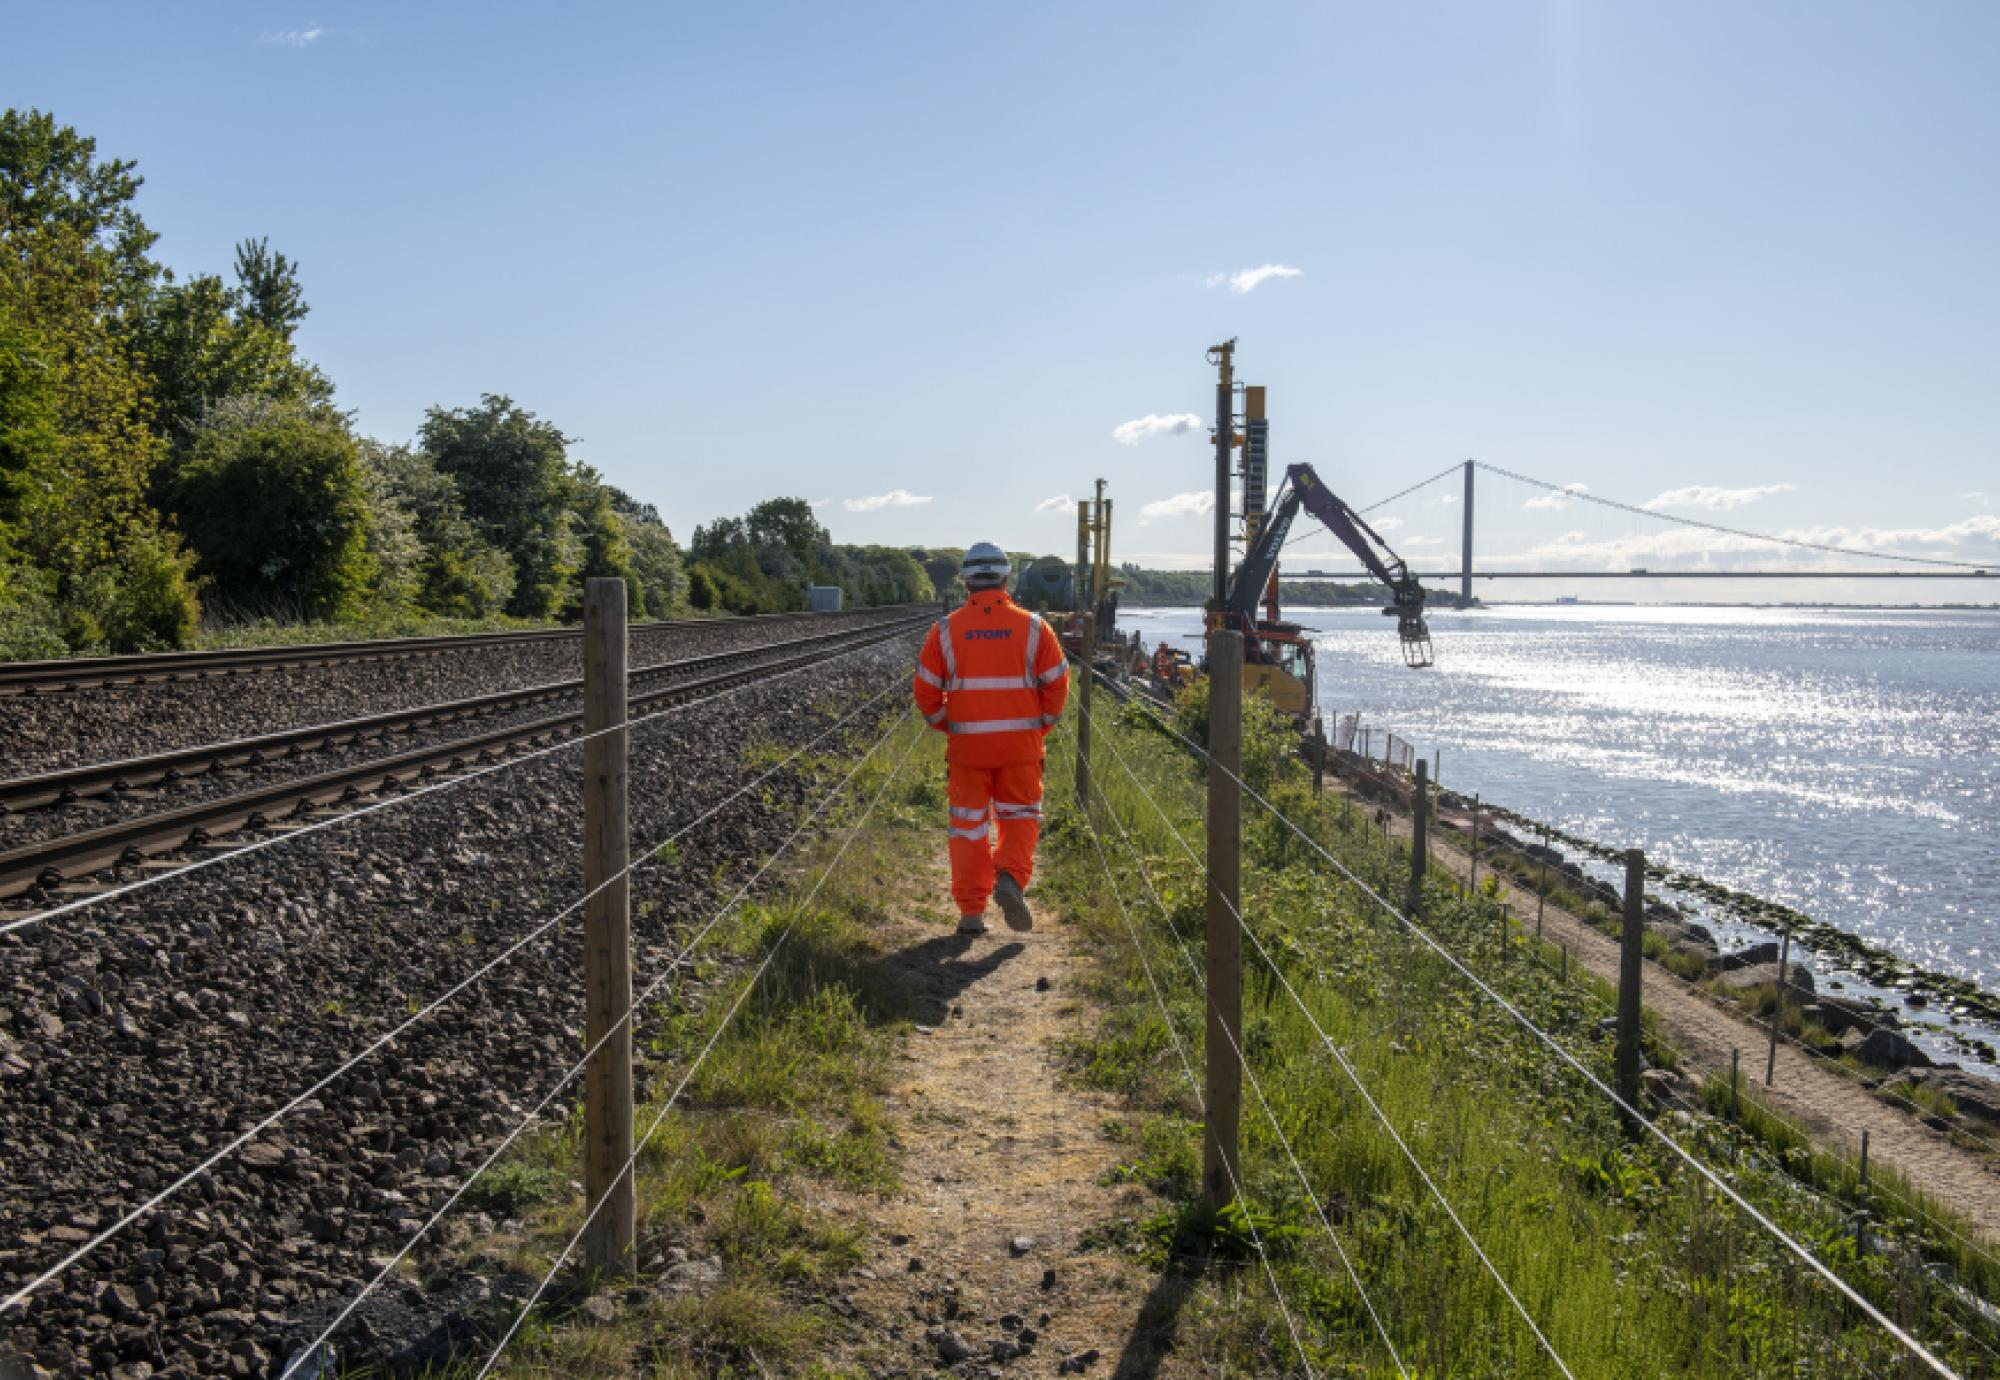 rail worker working on the track